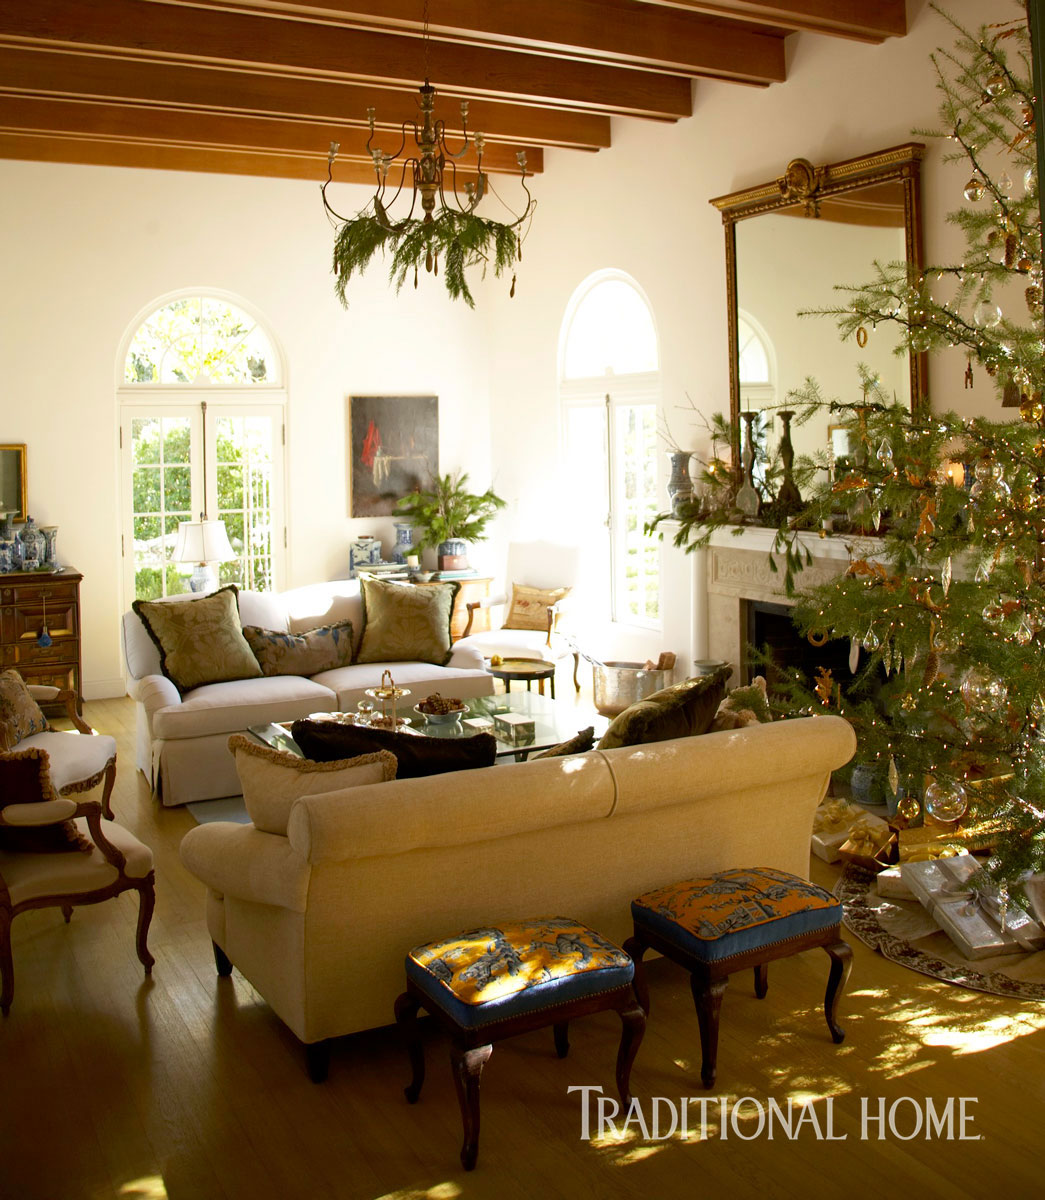 Christmas In A Spanish Mission-Style Home